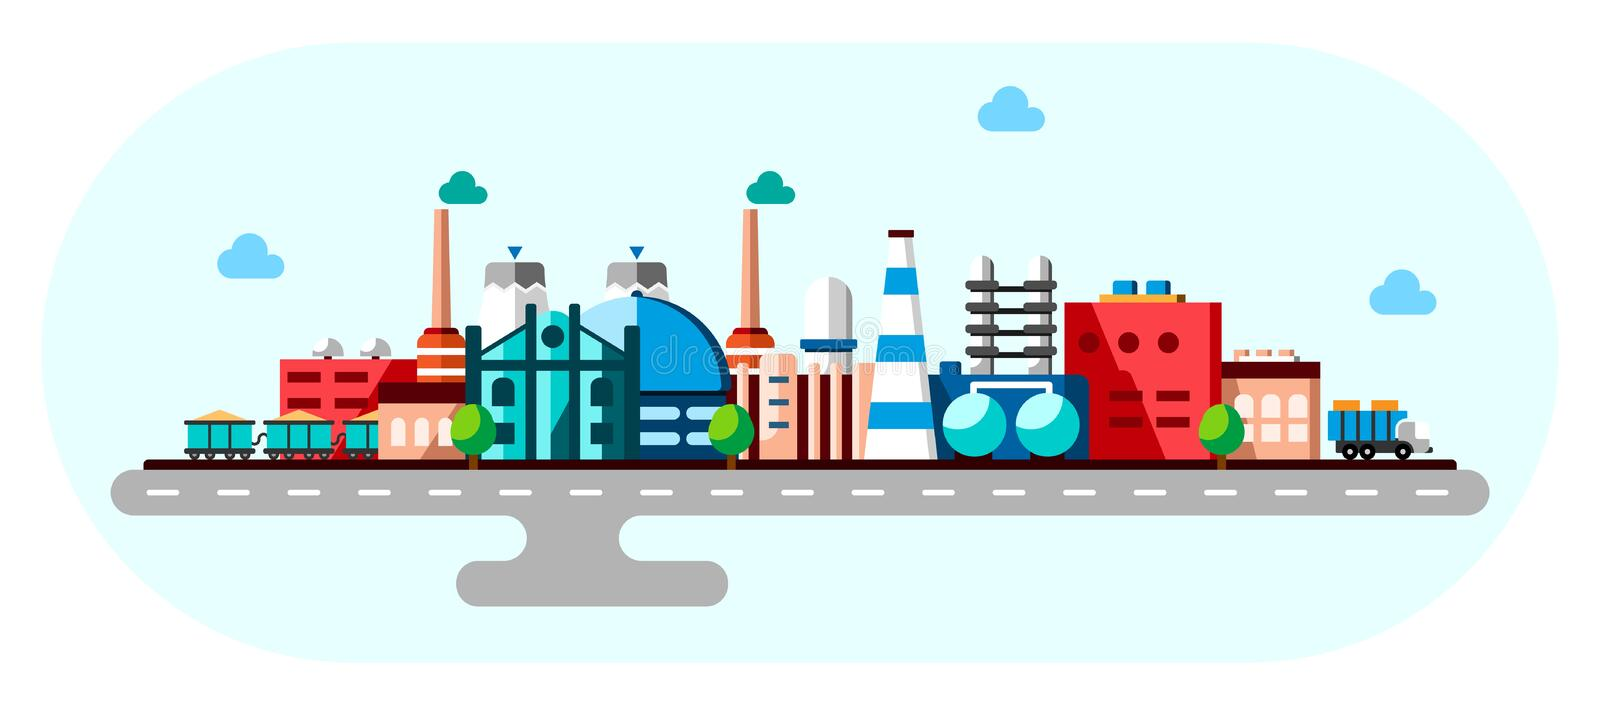 Global industrial factory technology process with ecology concept. Flat illustration of manufacturing buildings. Smart royalty free illustration